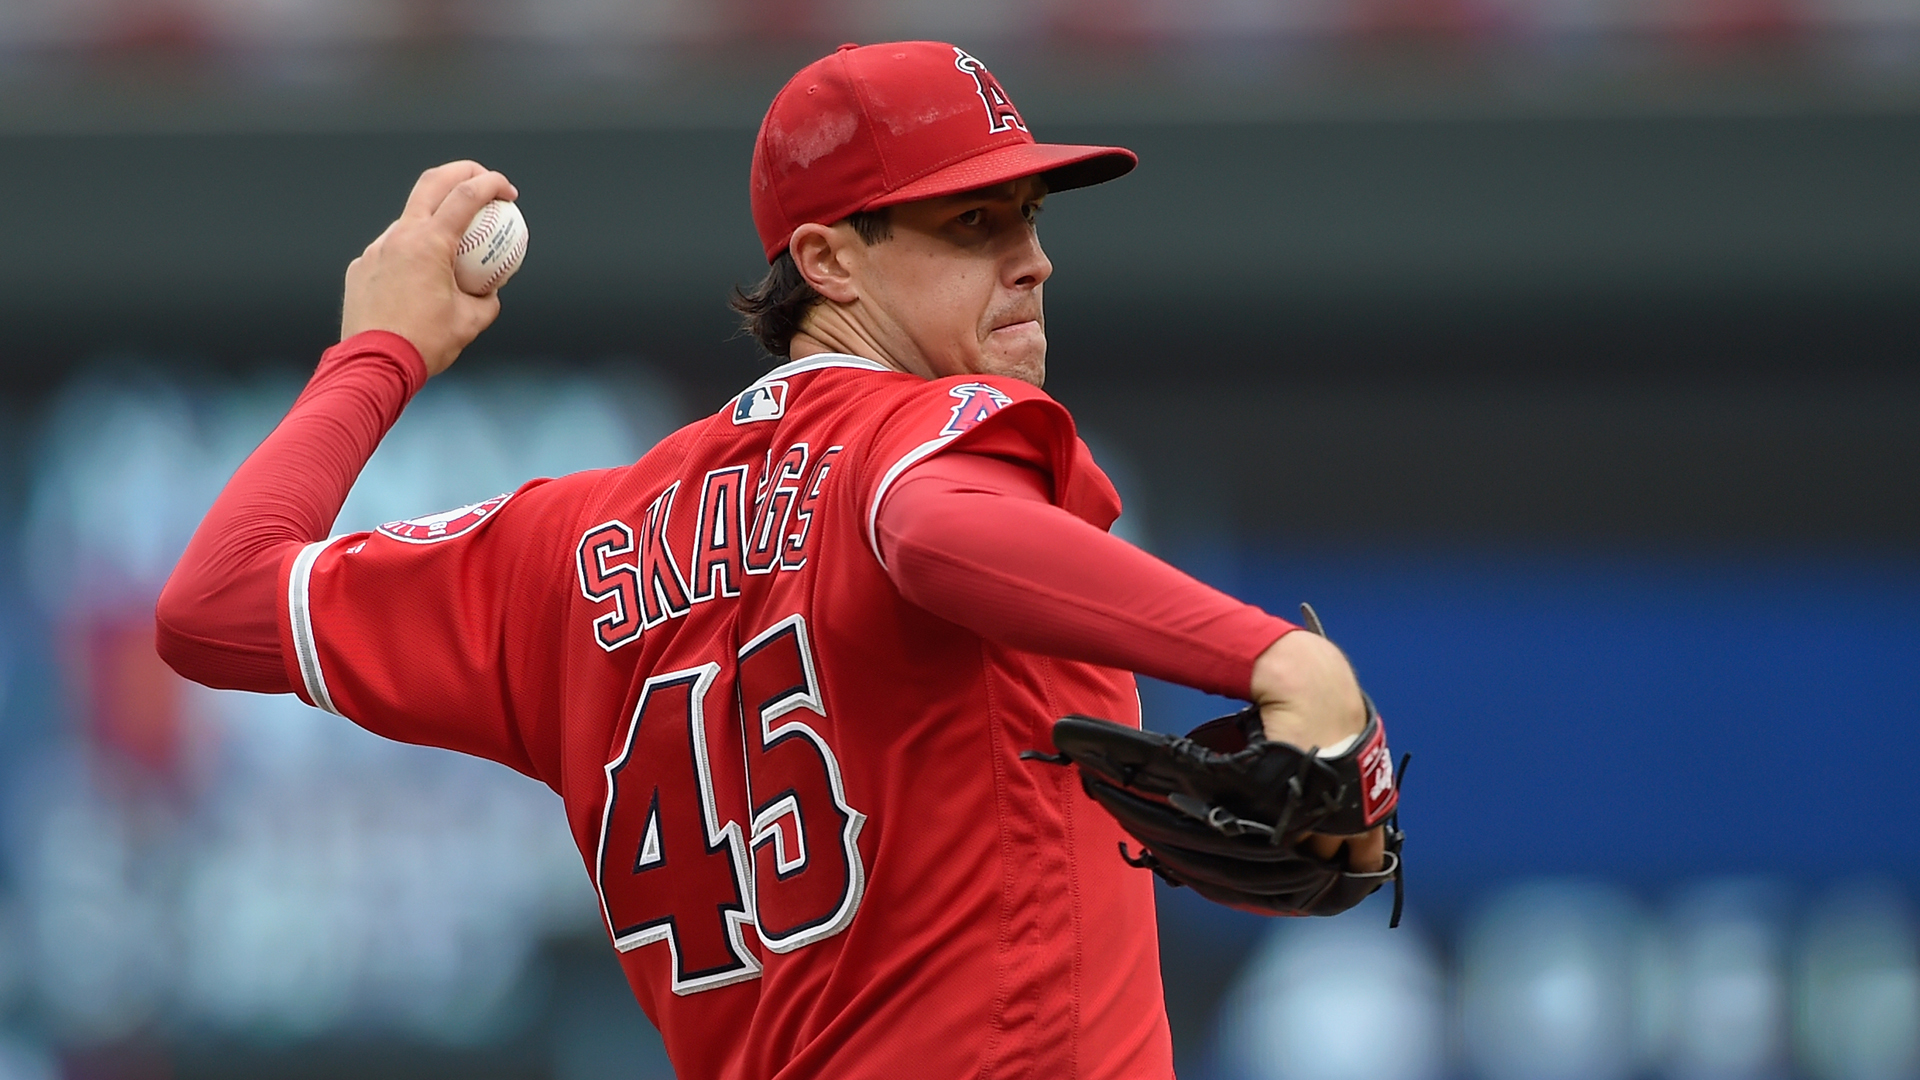 Tyler Skaggs of the Los Angeles Angels of Anaheim delivers a pitch against the Minnesota Twins during the first inning of the game on June 9, 2018 at Target Field in Minneapolis. (Credit: Hannah Foslien/Getty Images)